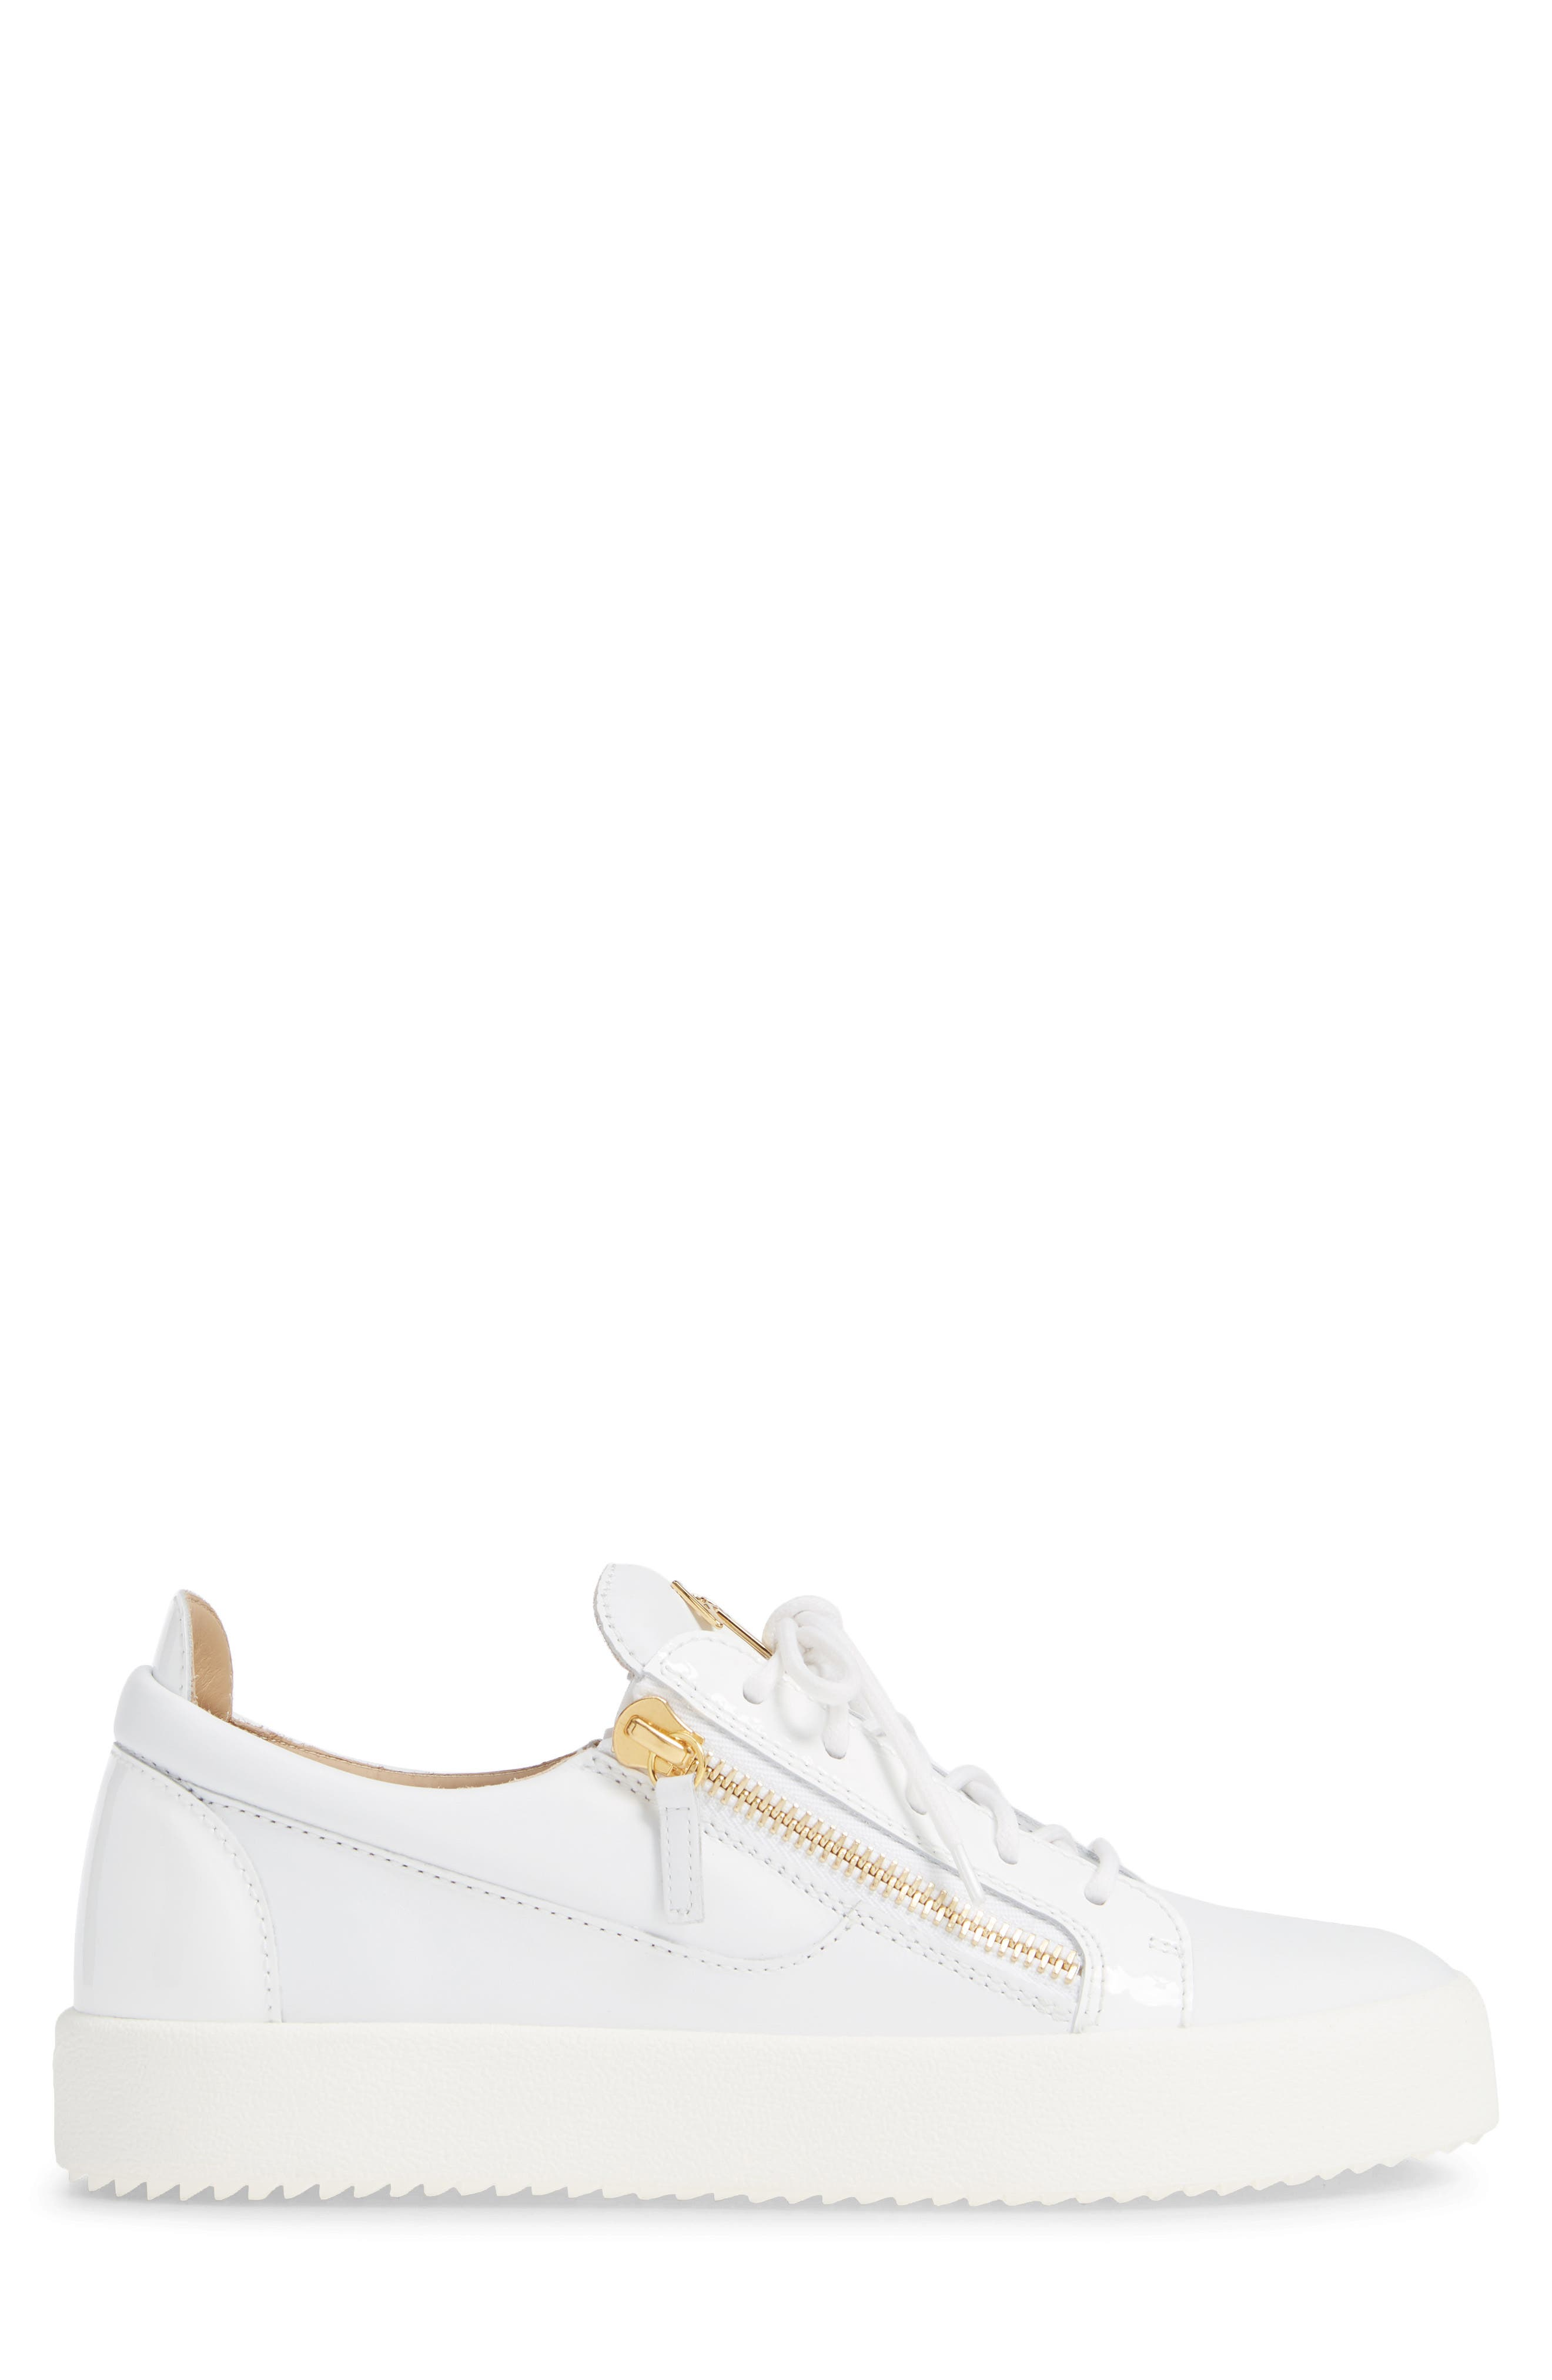 Low Top Sneaker,                             Alternate thumbnail 3, color,                             WHITE